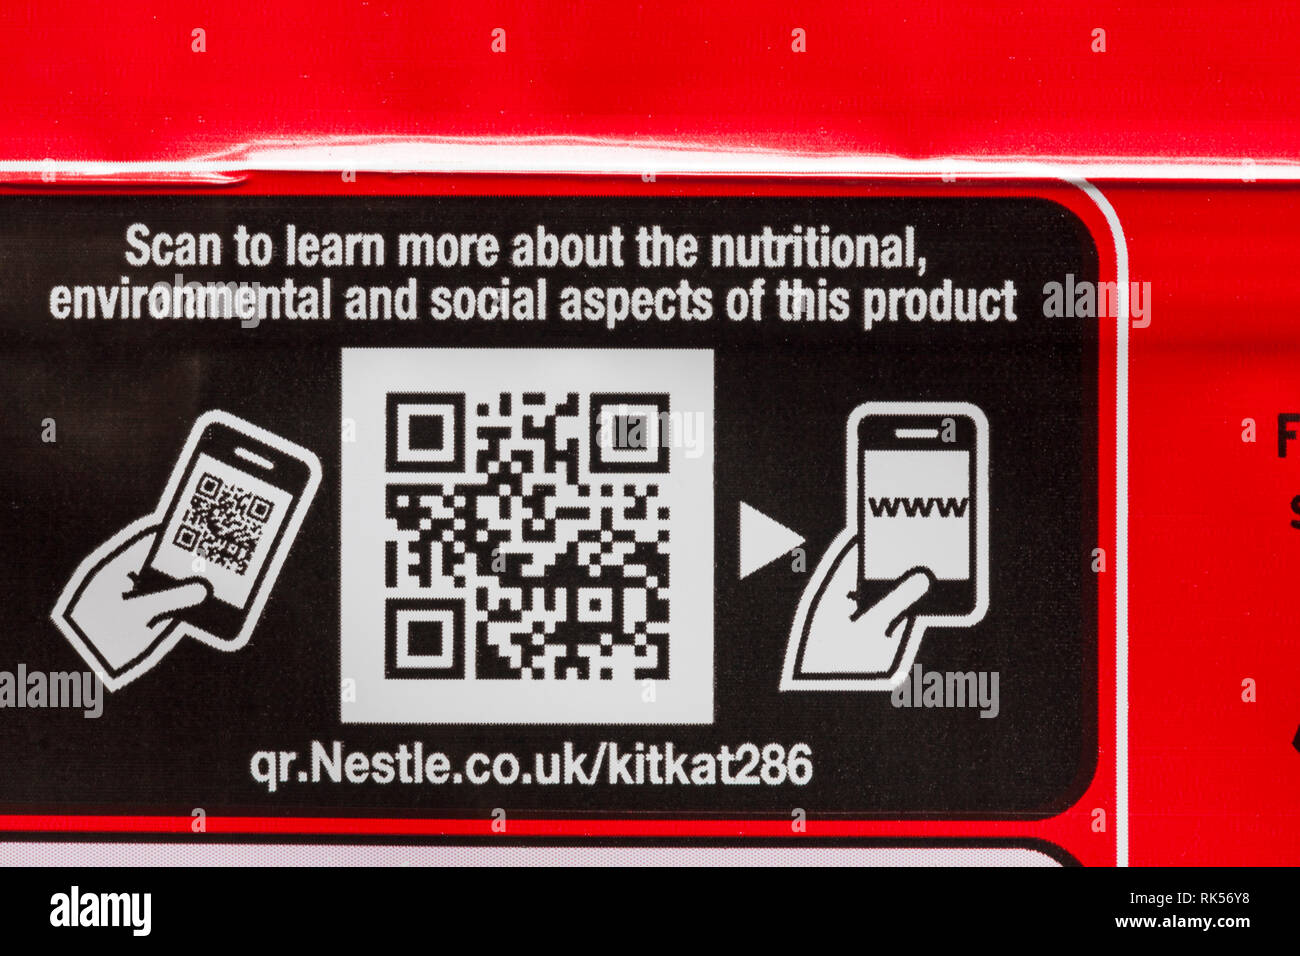 kitkat qr code on pack of kitkats - scan to learn more about the nutritional, environmental and social aspects of this product - Stock Image